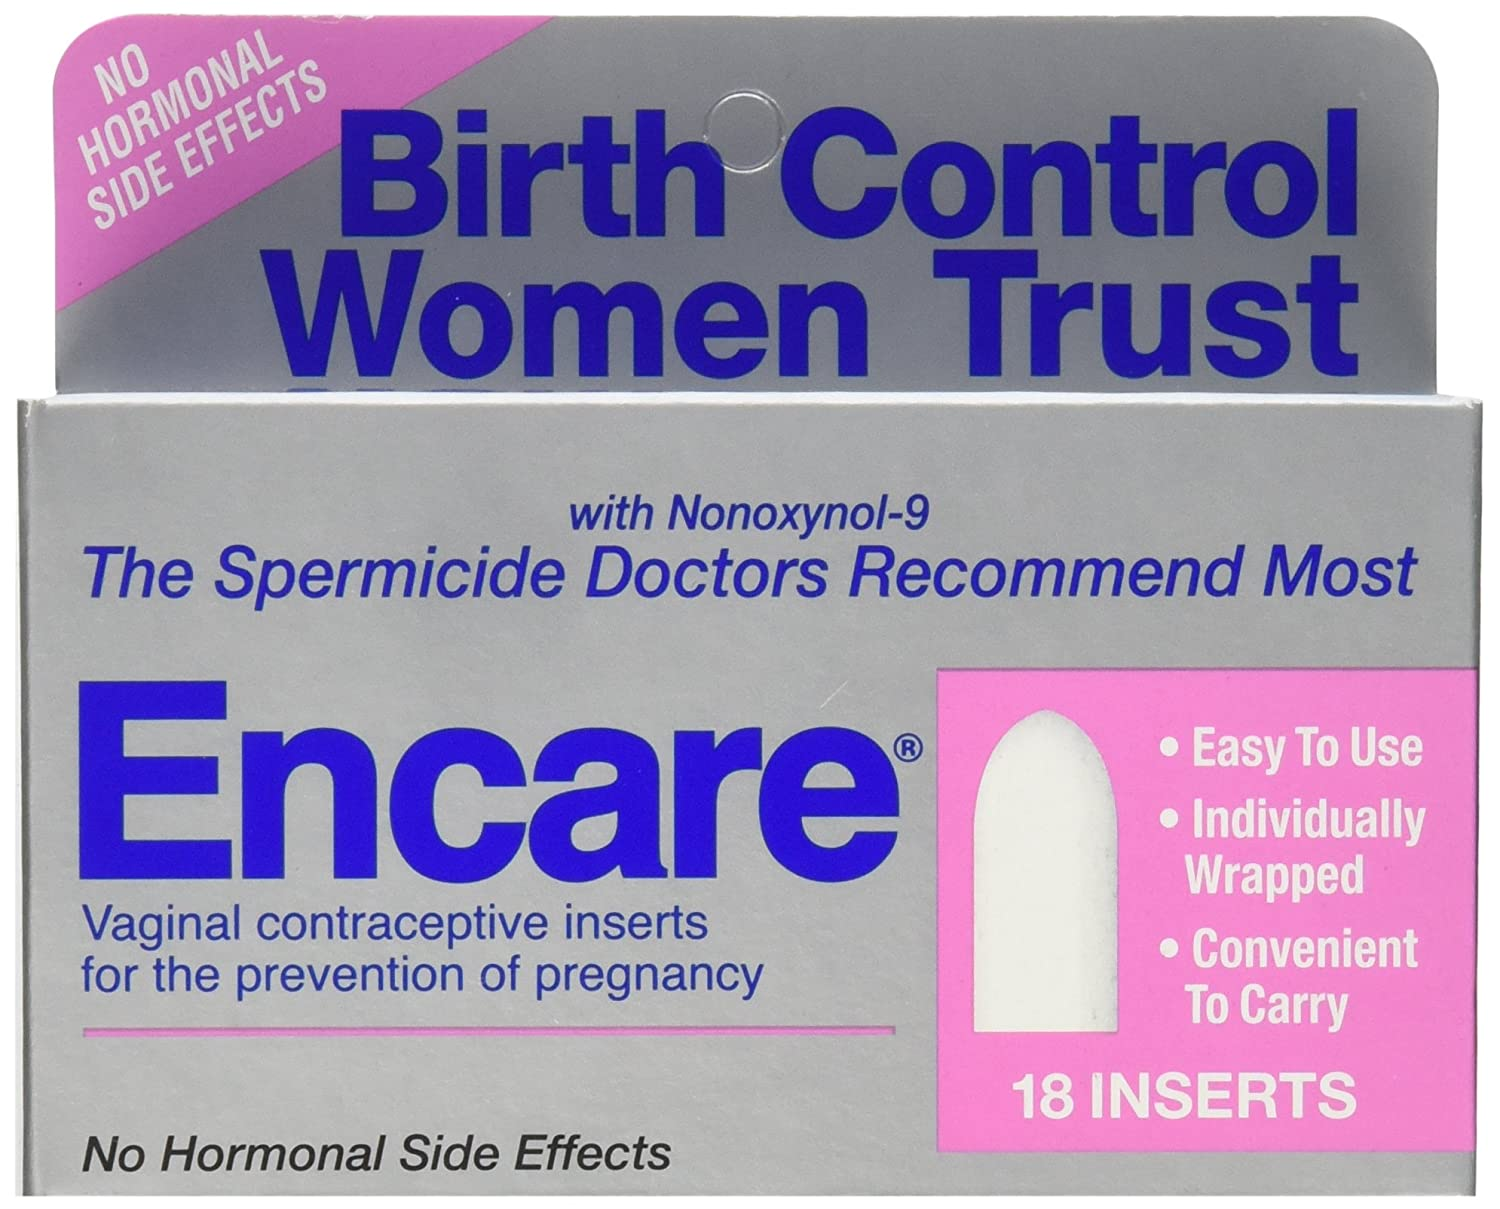 Amazon.com: Female Contraceptives: Health & Household